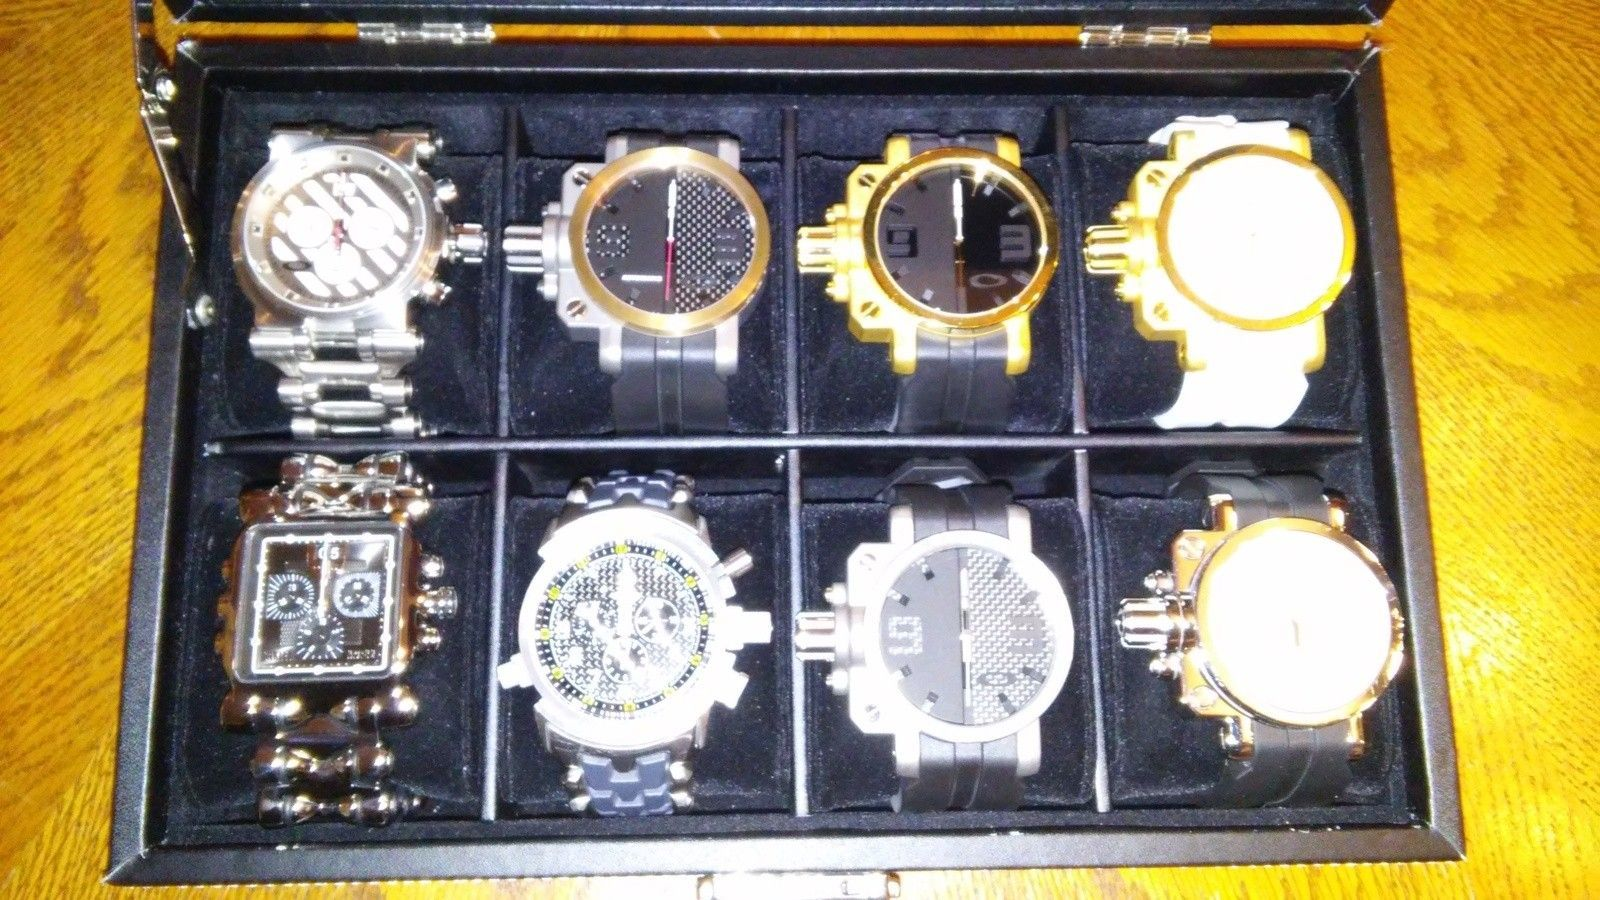 Watch collectioncollection - 20150309_115200.jpg